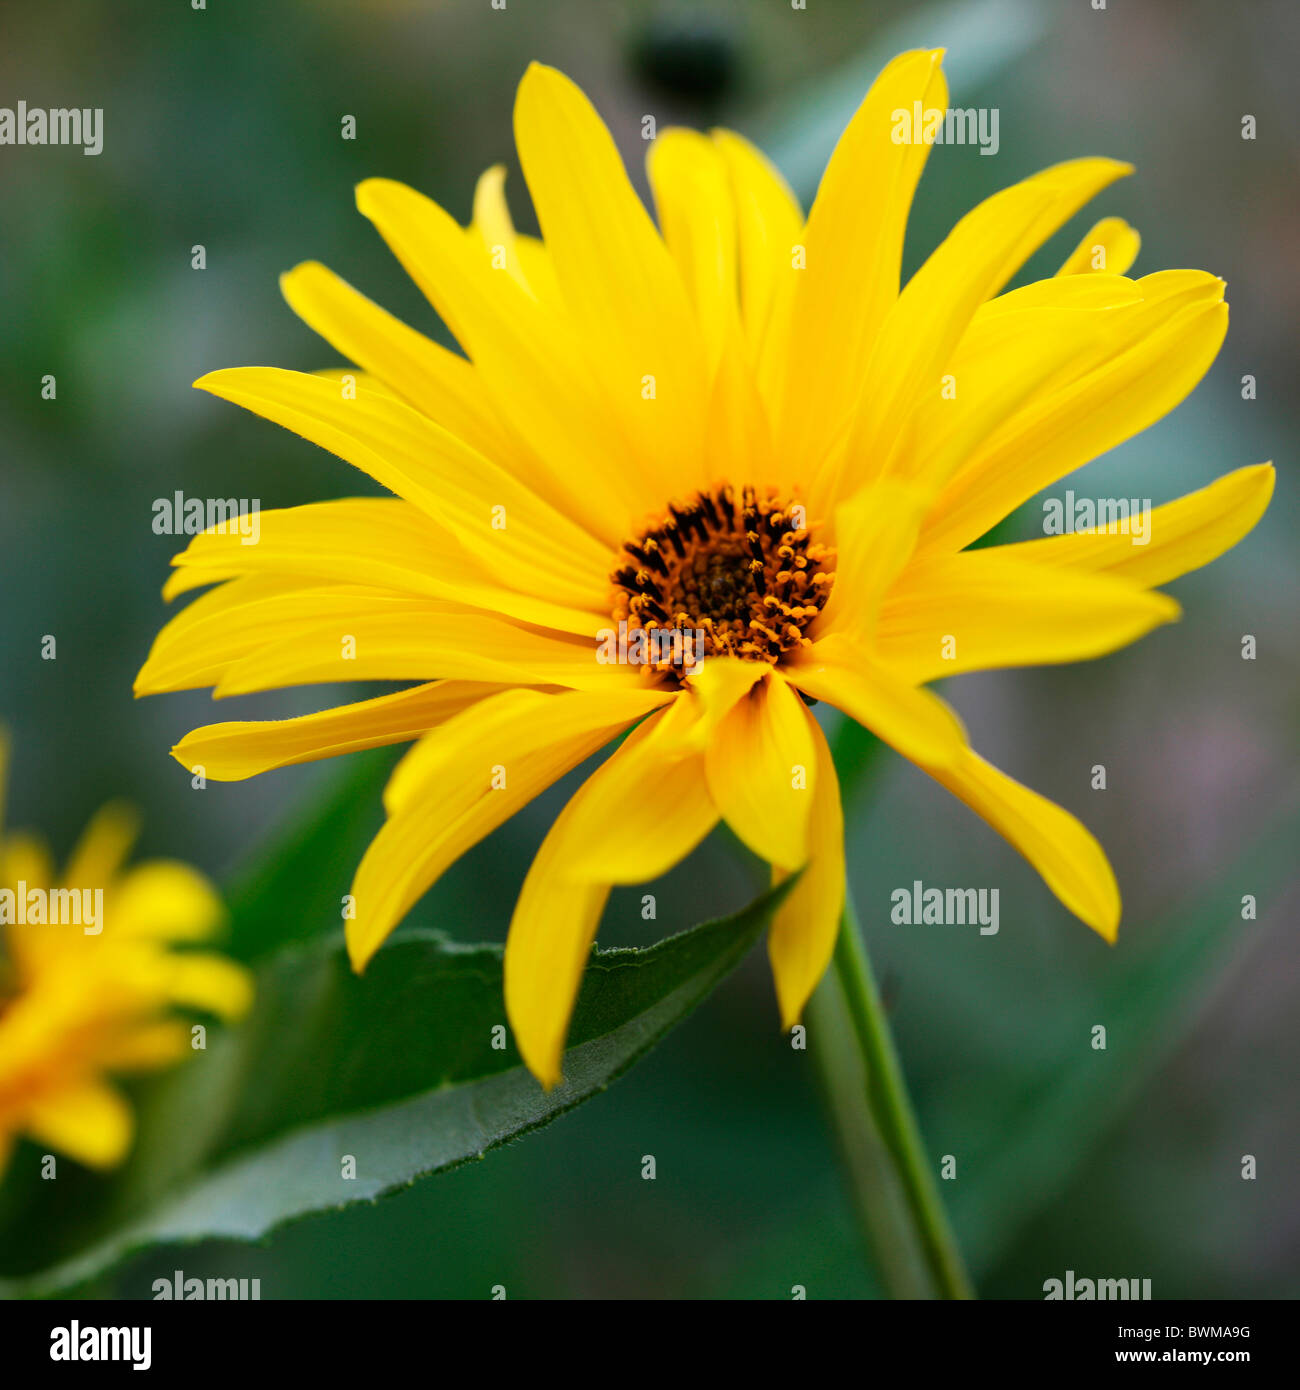 sweet and lovely yellow chrysanthemum Jane-Ann Butler Photography JABP924 - Stock Image